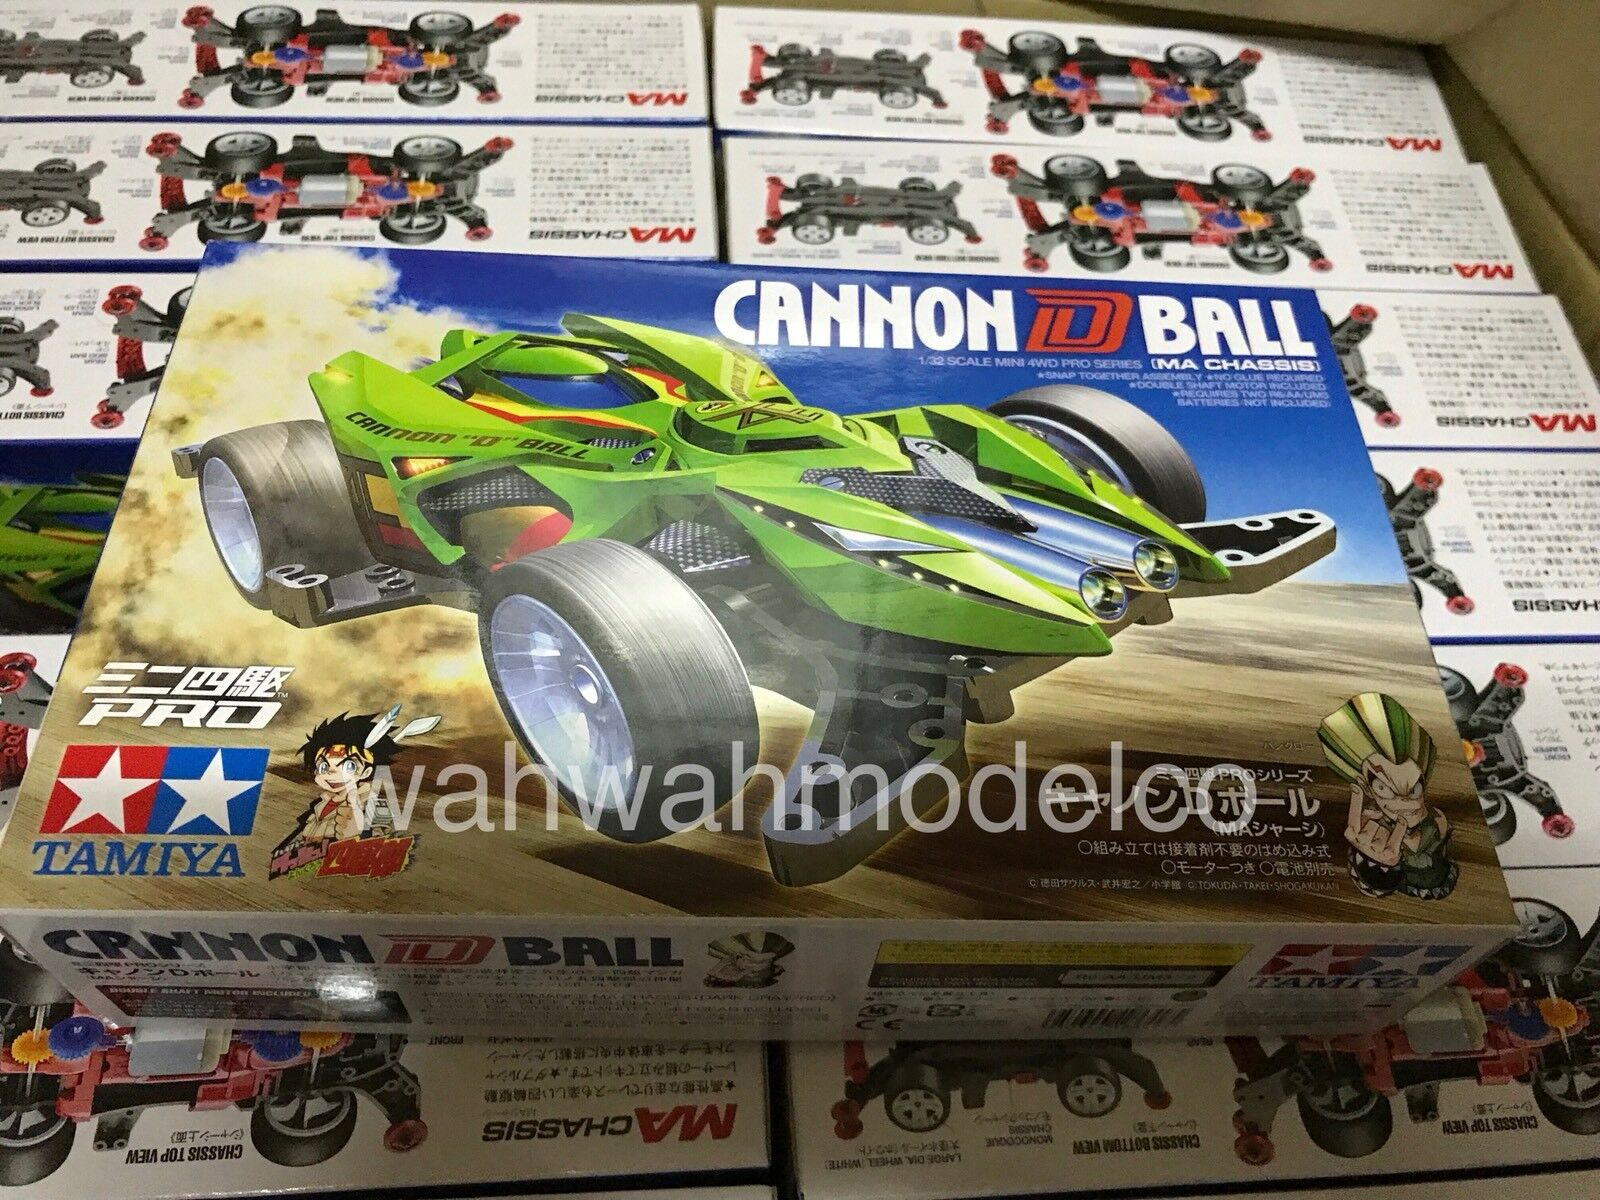 Tamiya 18649 1 32 Mini 4wd Cannon D Ball Ma Chassis Kit 1329 Basic Tune Up Parts Set For Ar Of 2 See More